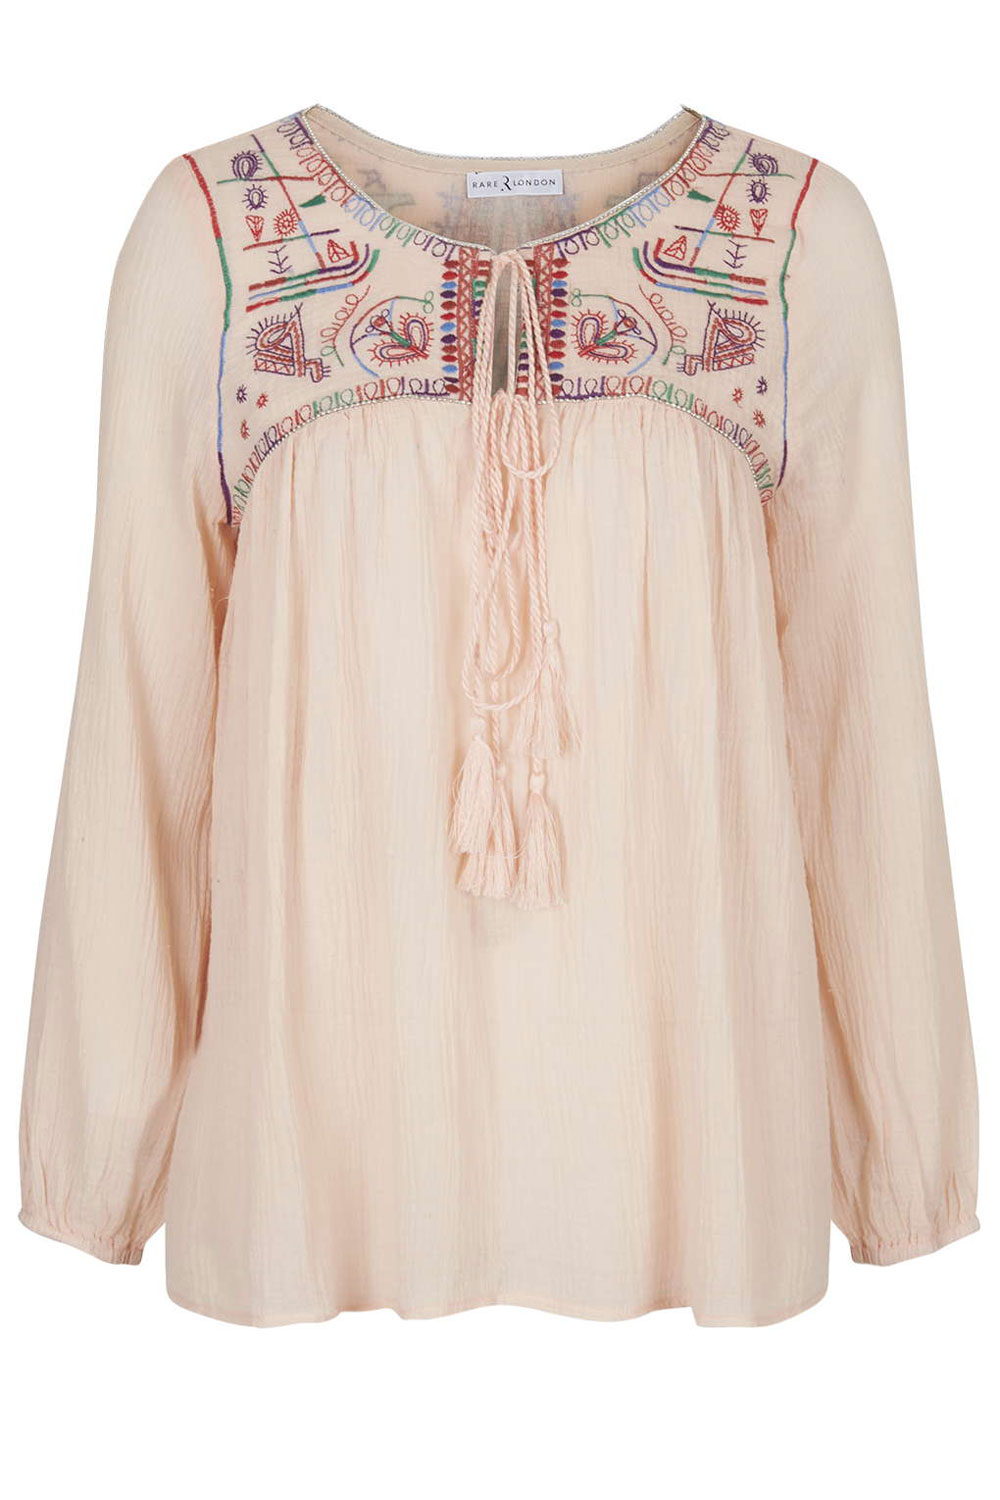 Peasant Tops: The Best Blouses Of The Season